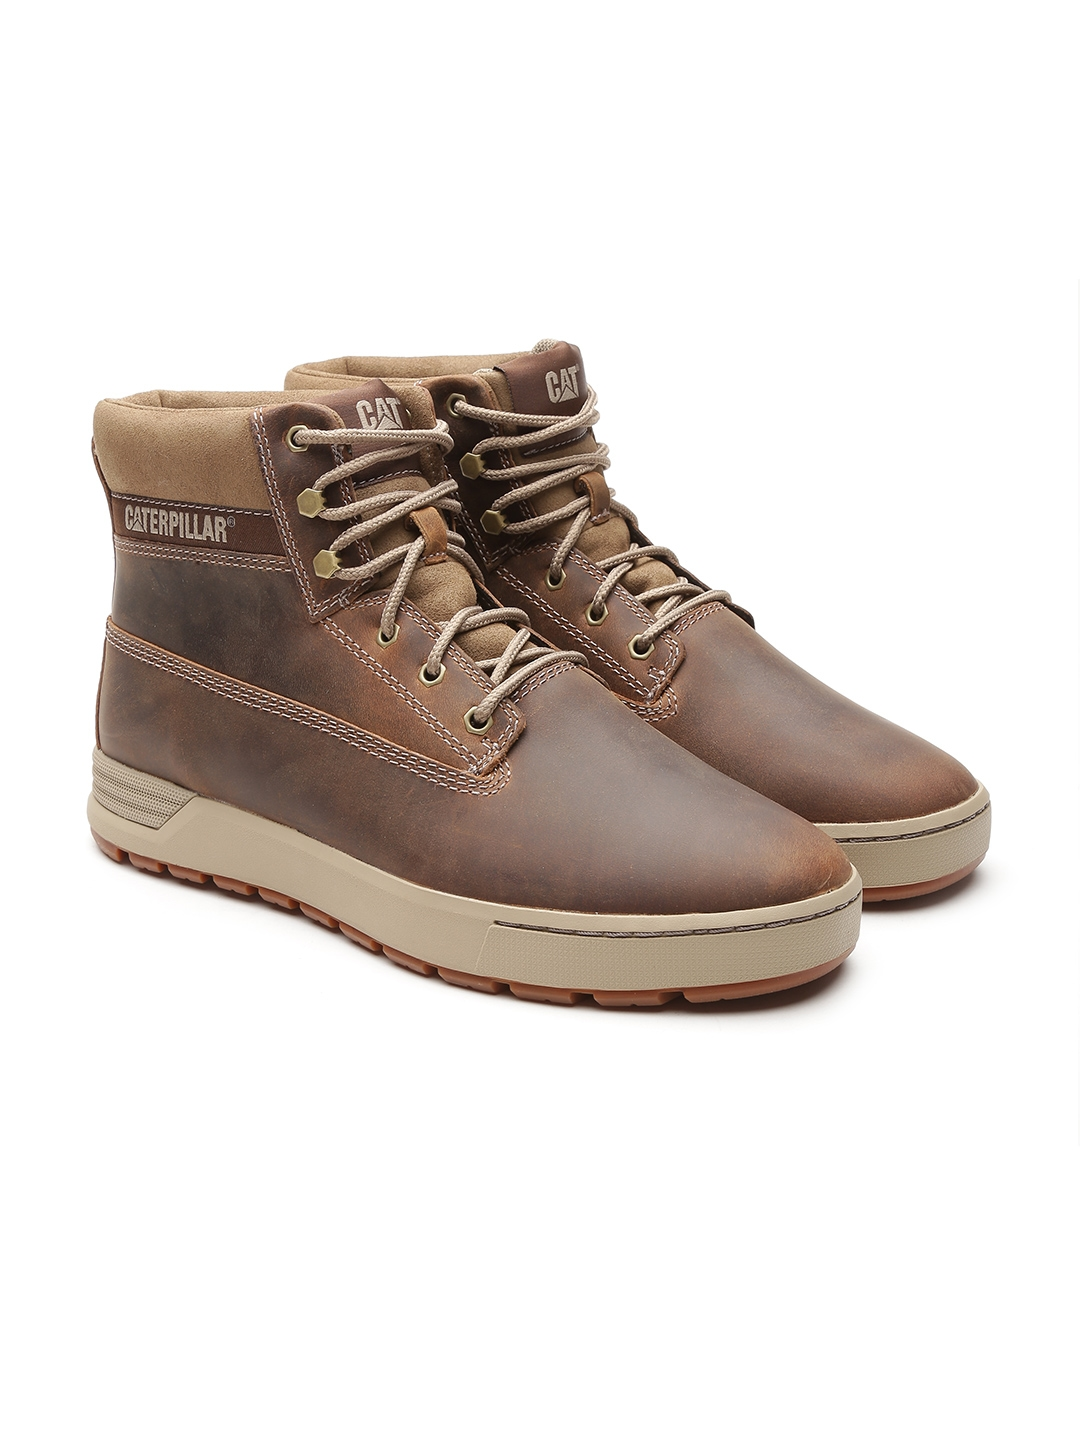 7505ed45a4a Buy CAT Men Brown Solid Leather High Top Flat Boots - Casual Shoes ...